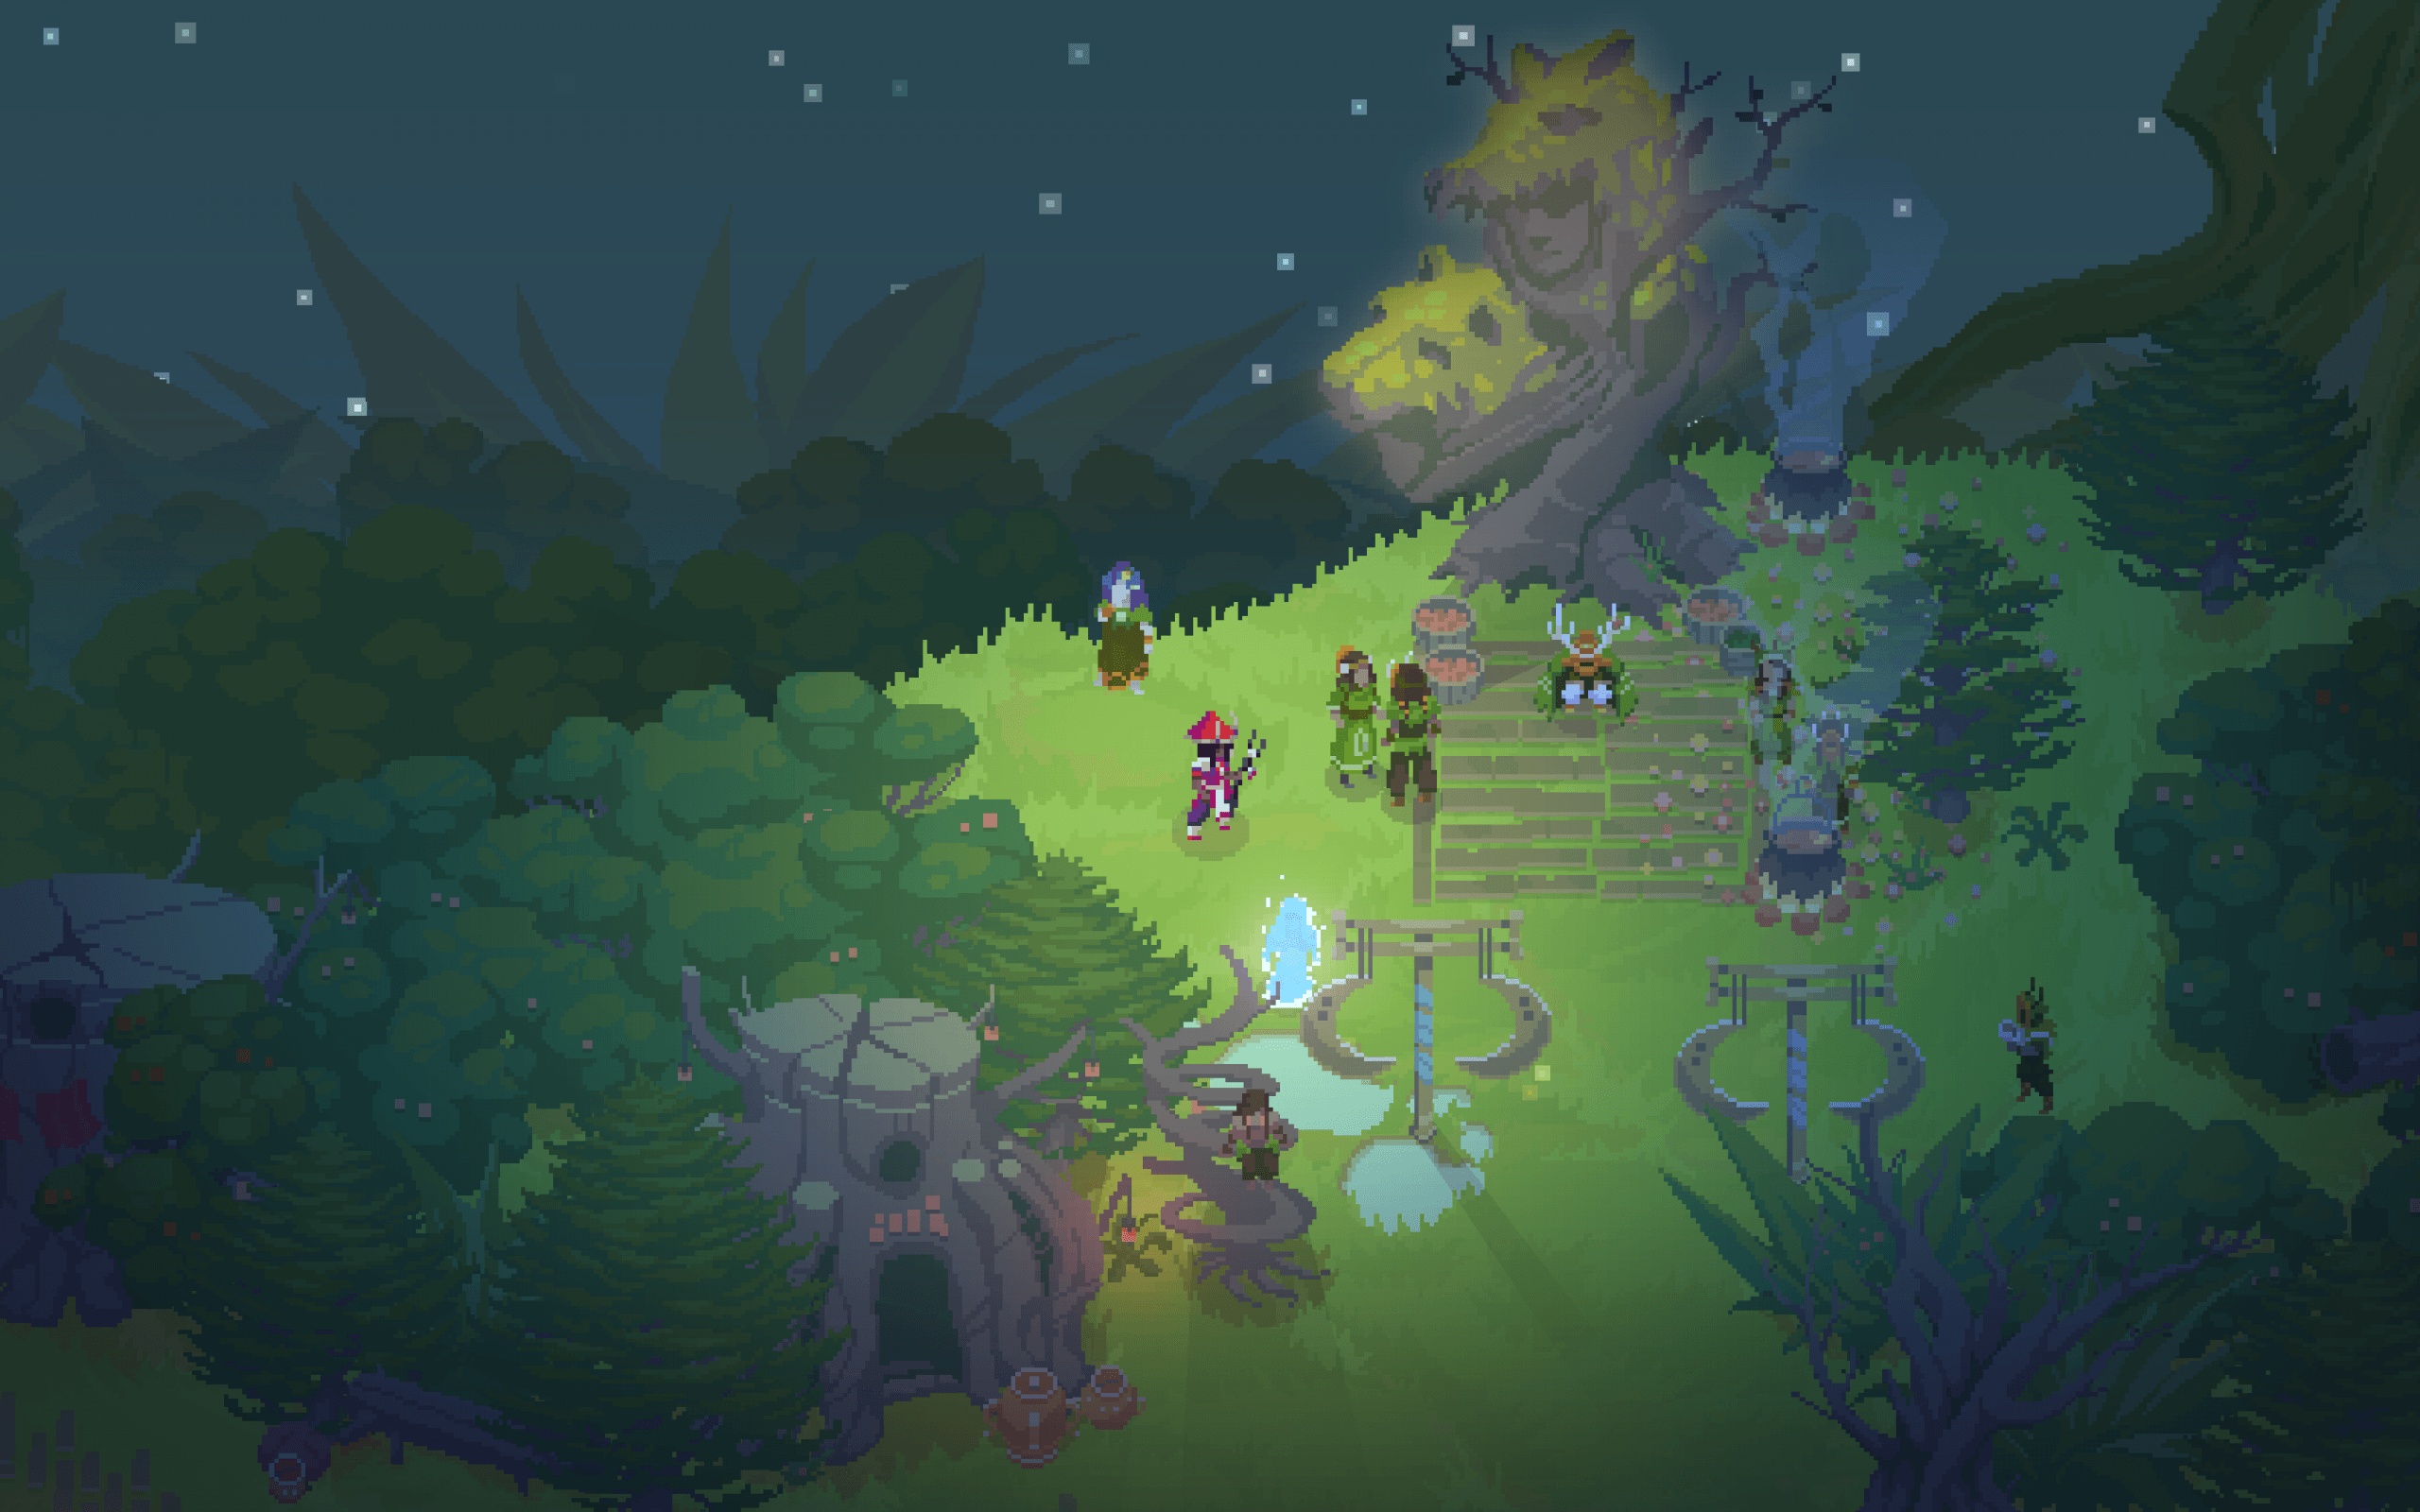 Download 2560x1600 Moon Hunters, Pixel Art Wallpapers for MacBook